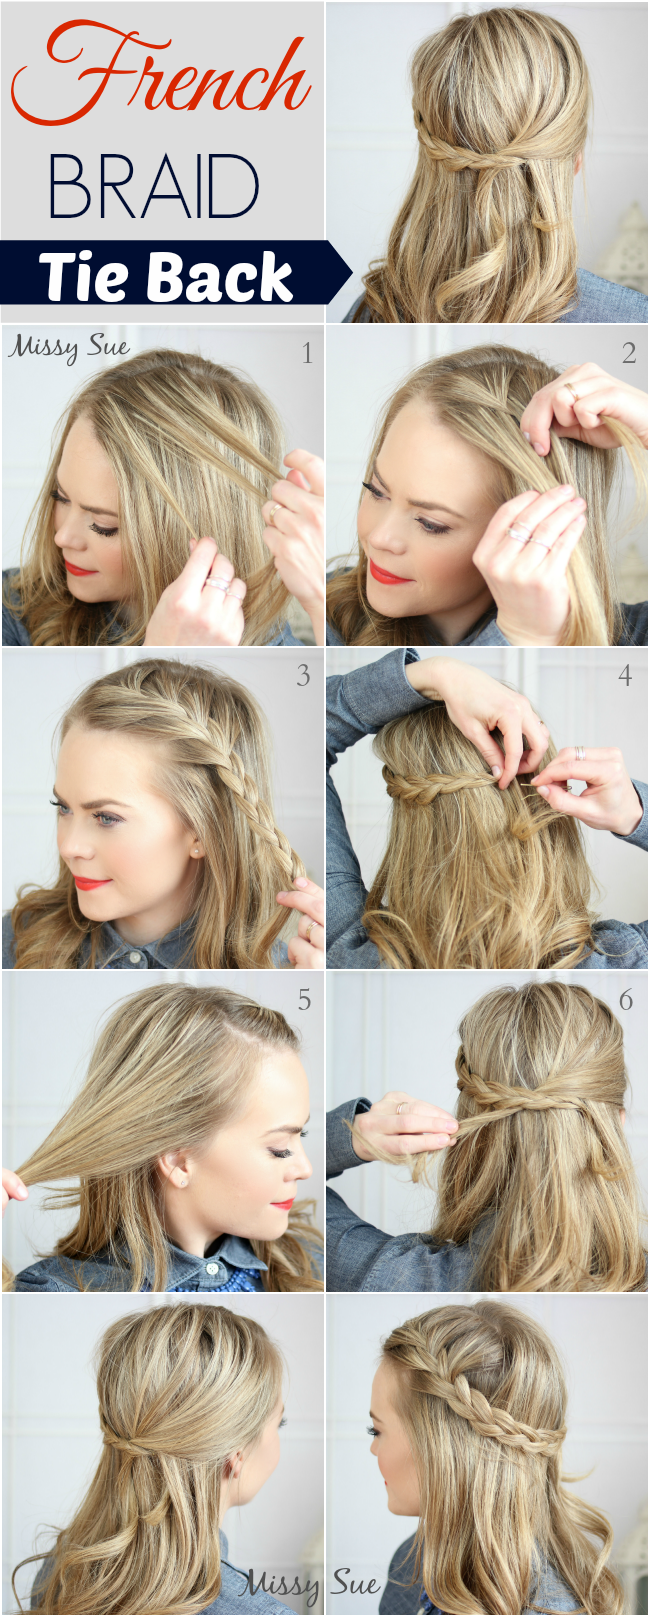 Diy french braid tie back pictures photos and images for facebook